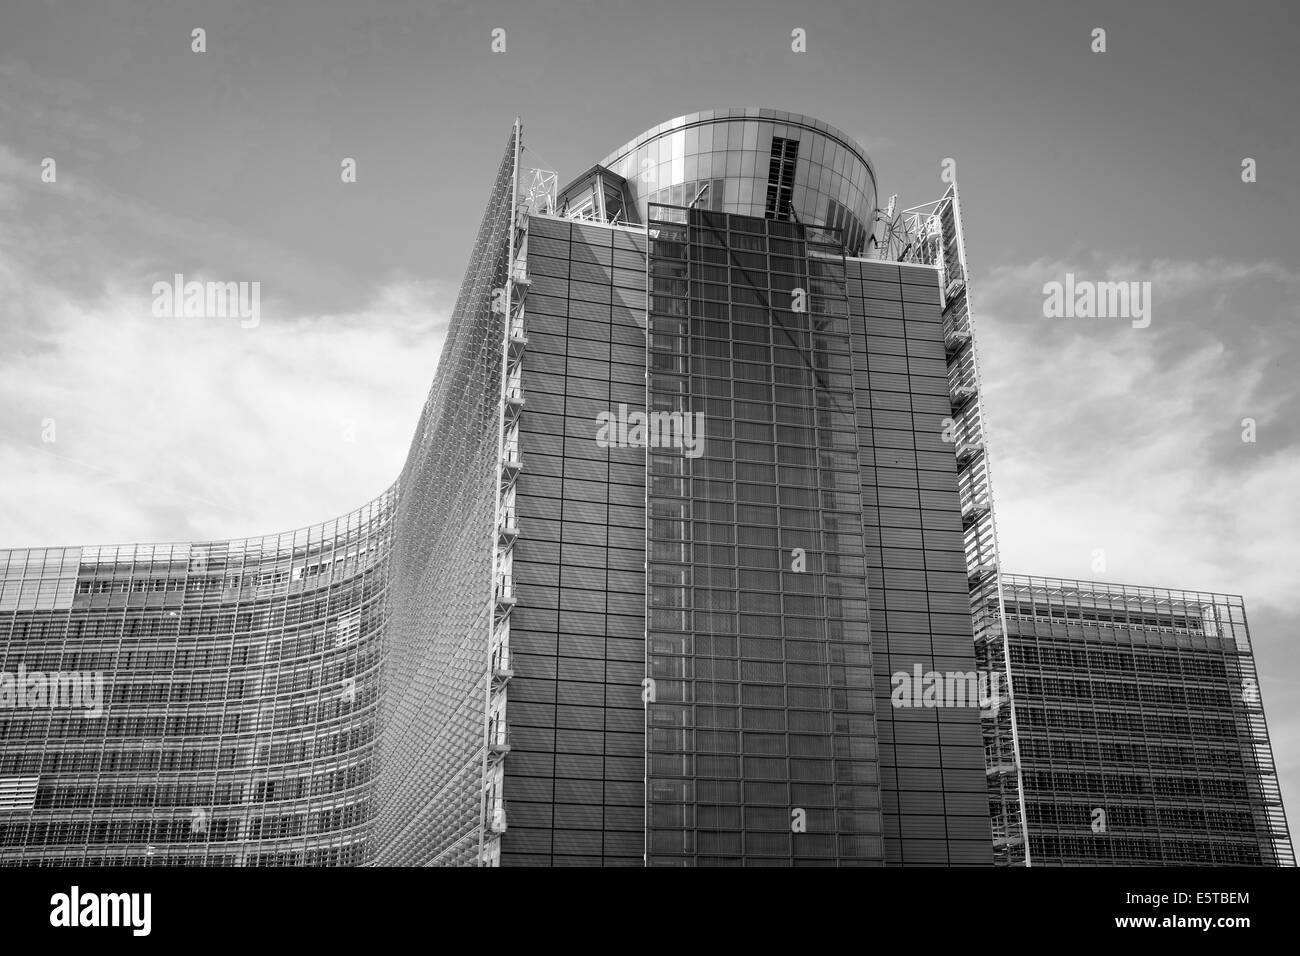 Berlaymont building of the European Commission for the administration of the European Union in Brussels, Belgium - Stock Image